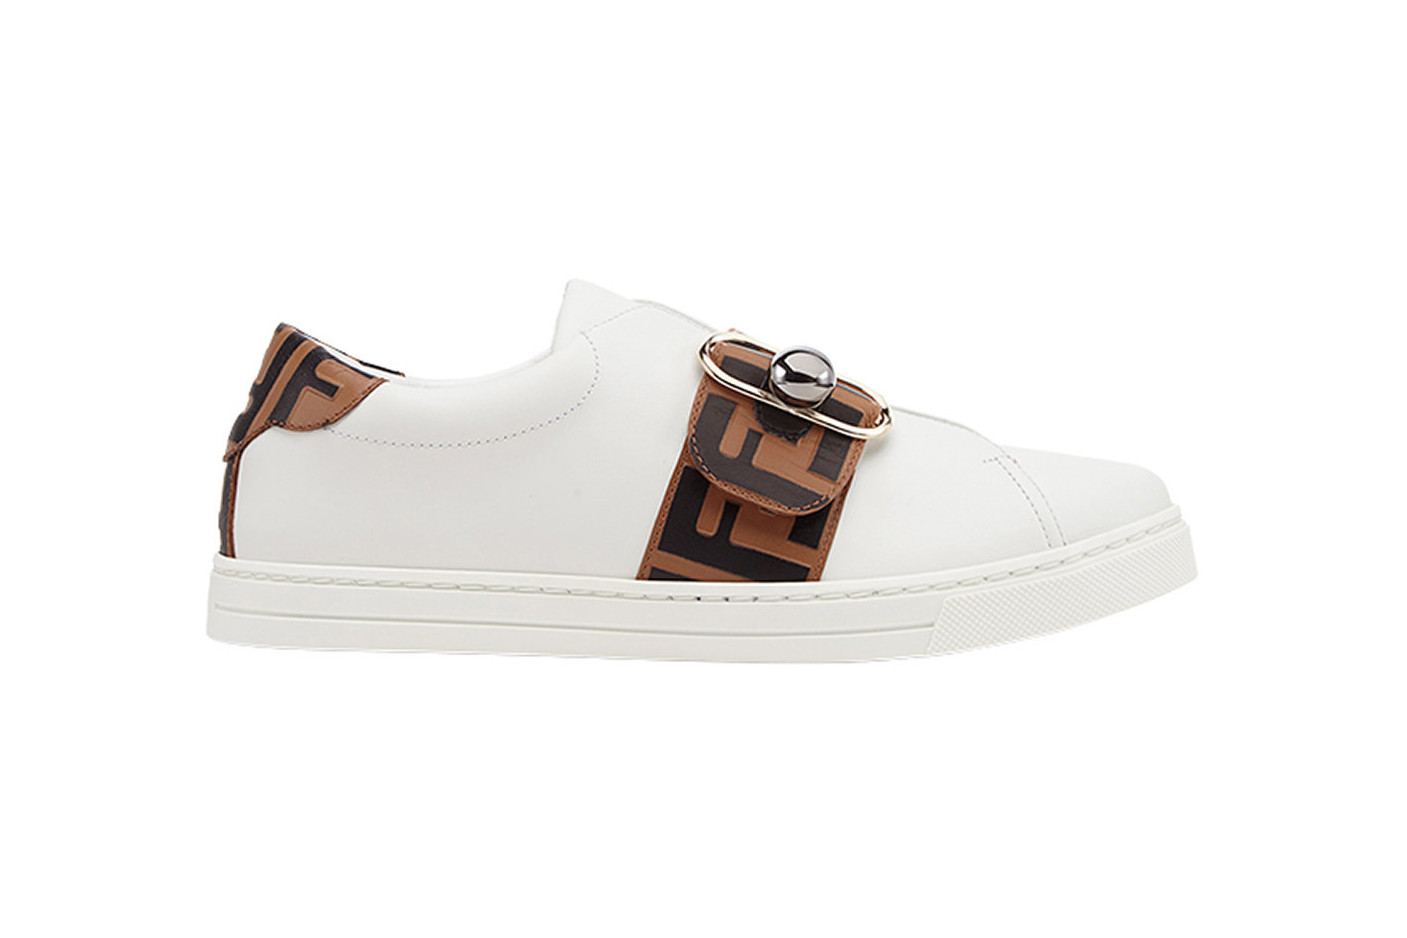 Fendi's FF Band Sneakers Are for the